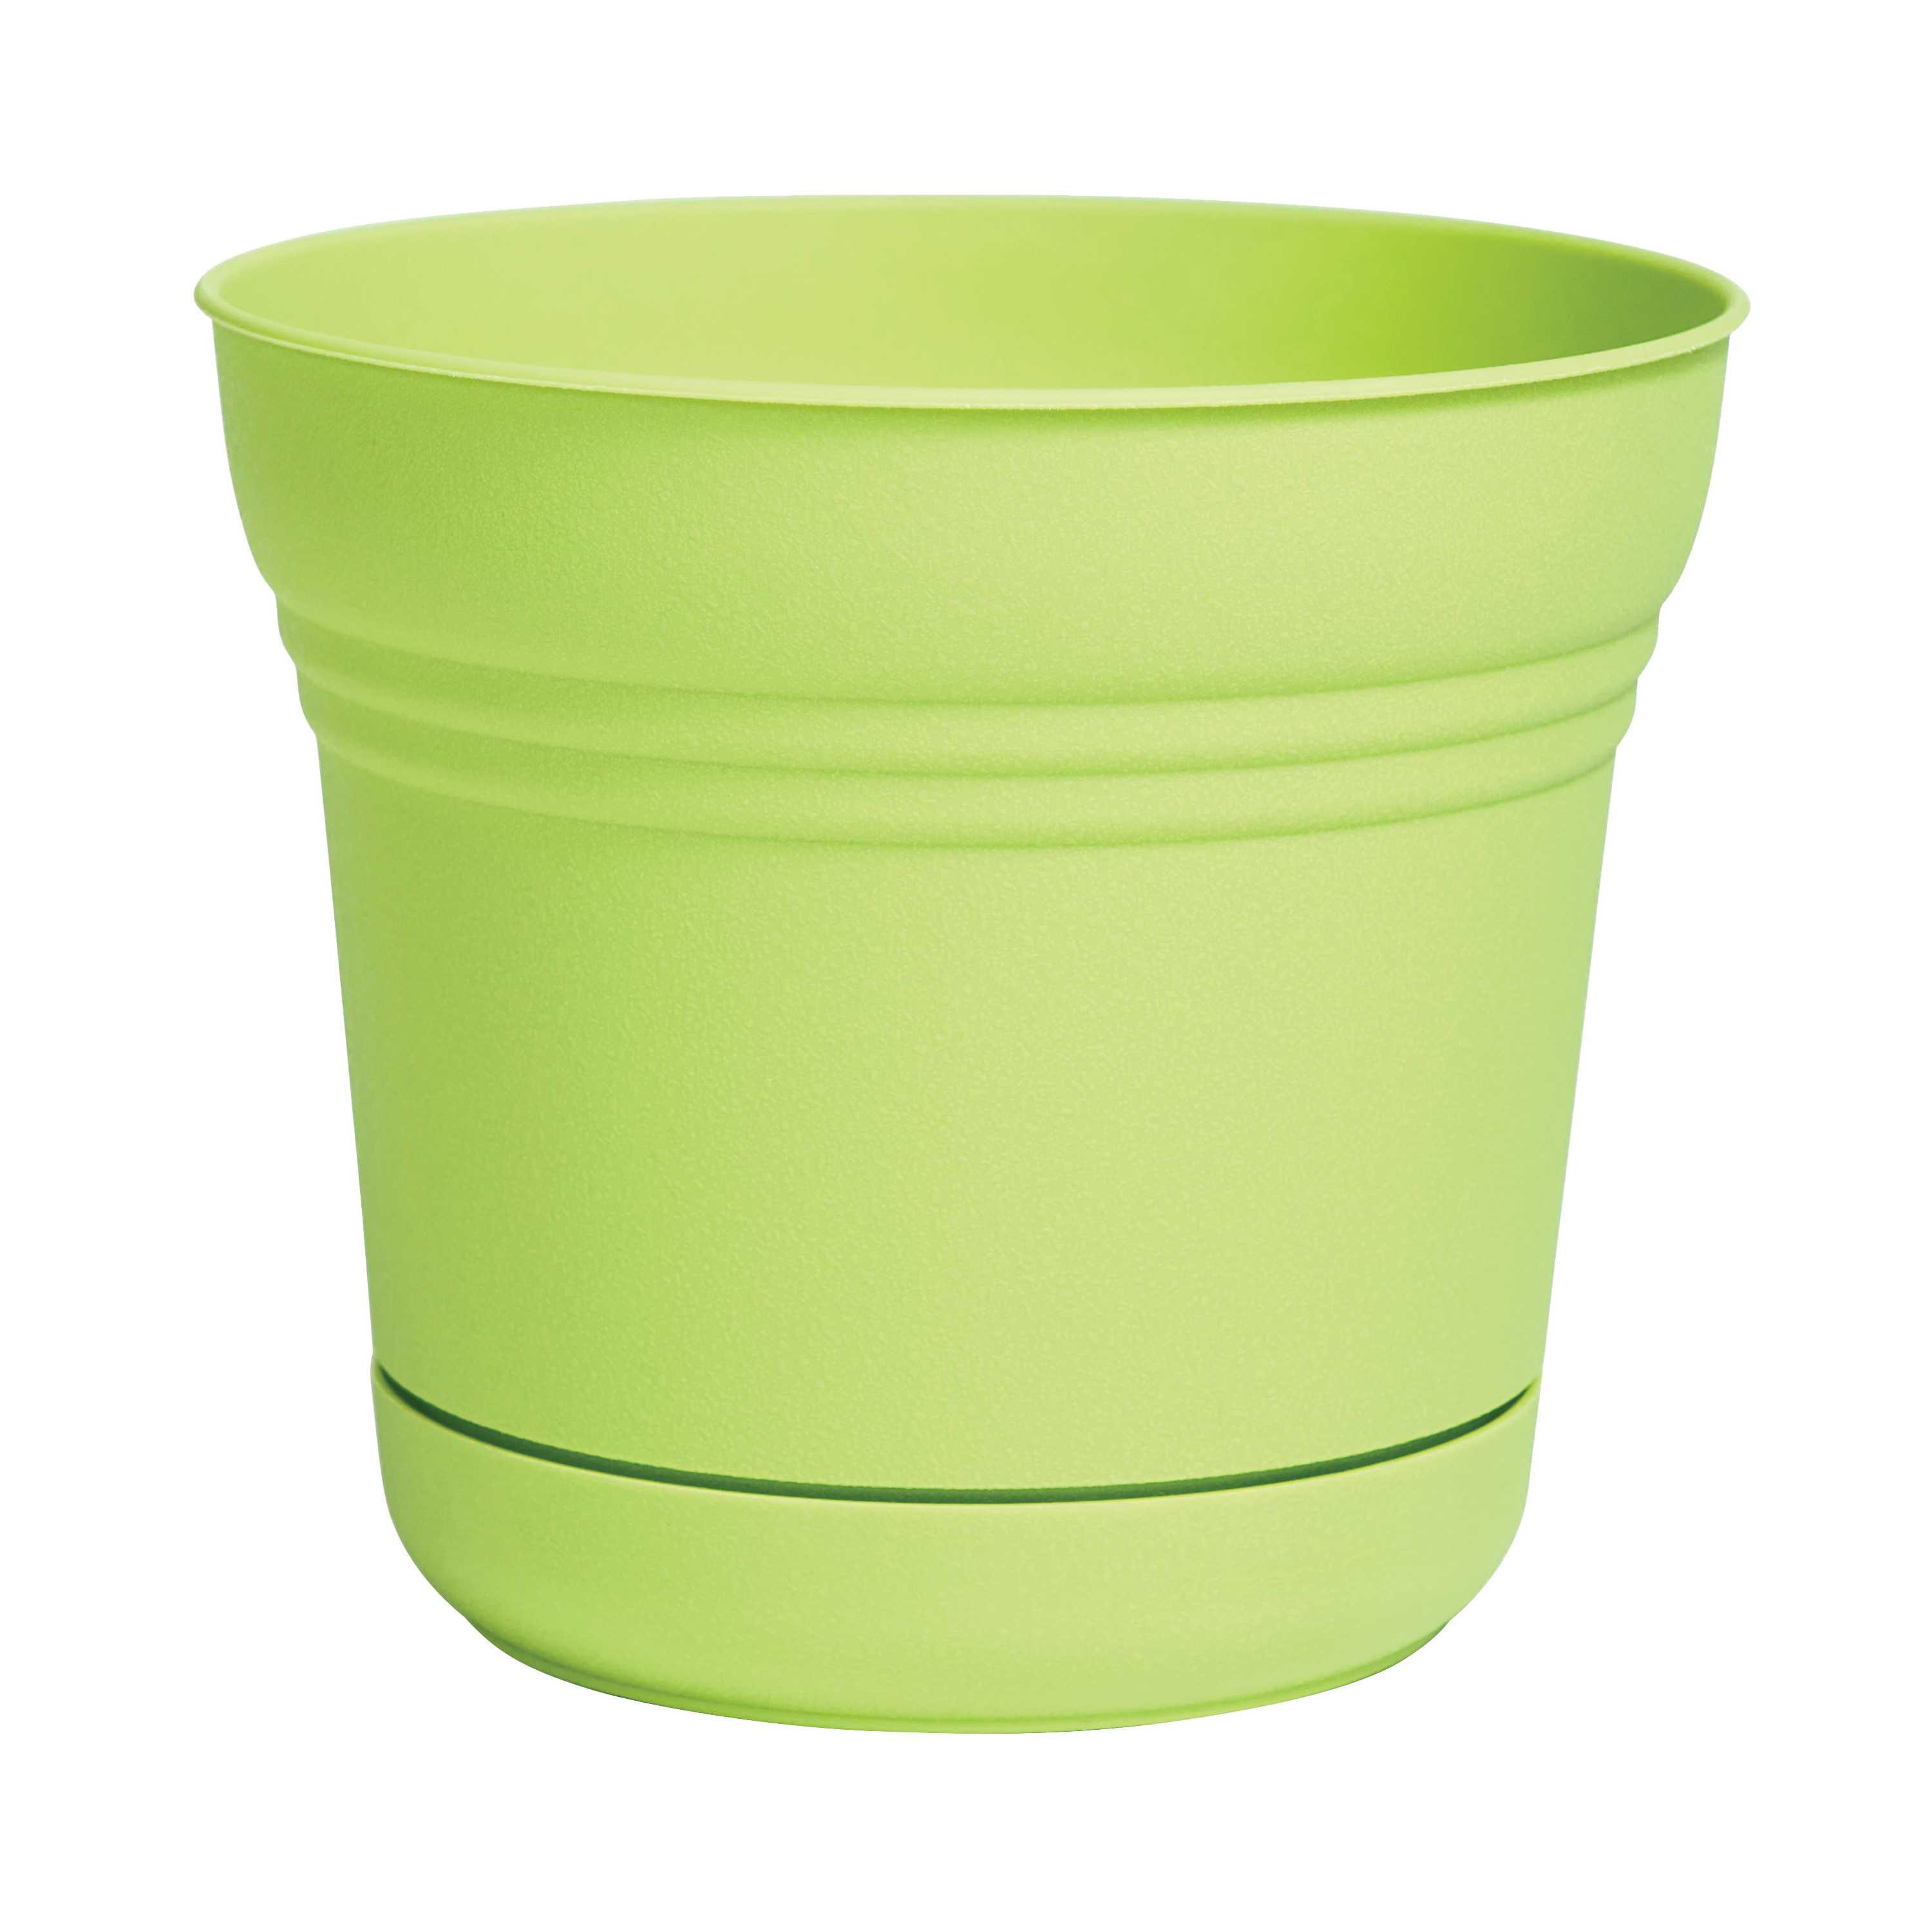 Picture of Bloem SP0725 Saturn Planter, 7.3 in W, Bell, Plastic, Honey Dew, Matte